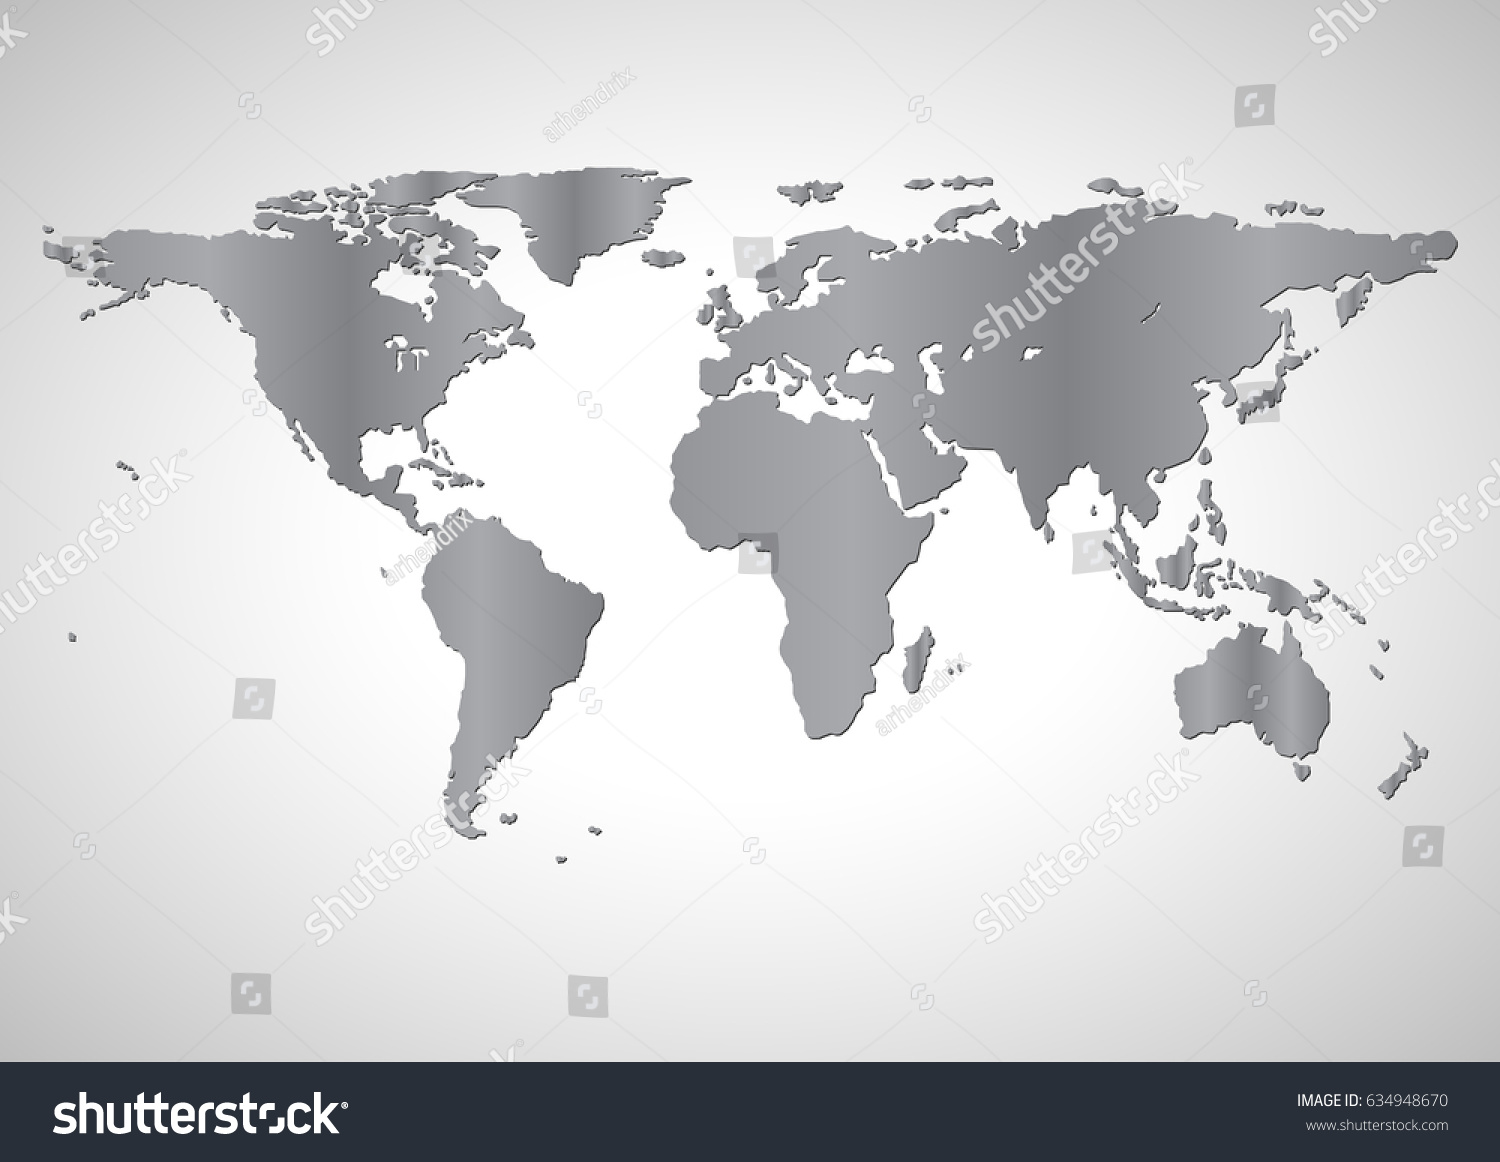 Blank monochrome grey similar world map stock vector 634948670 blank monochrome or grey similar world map or flat earth graph world map illustration gumiabroncs